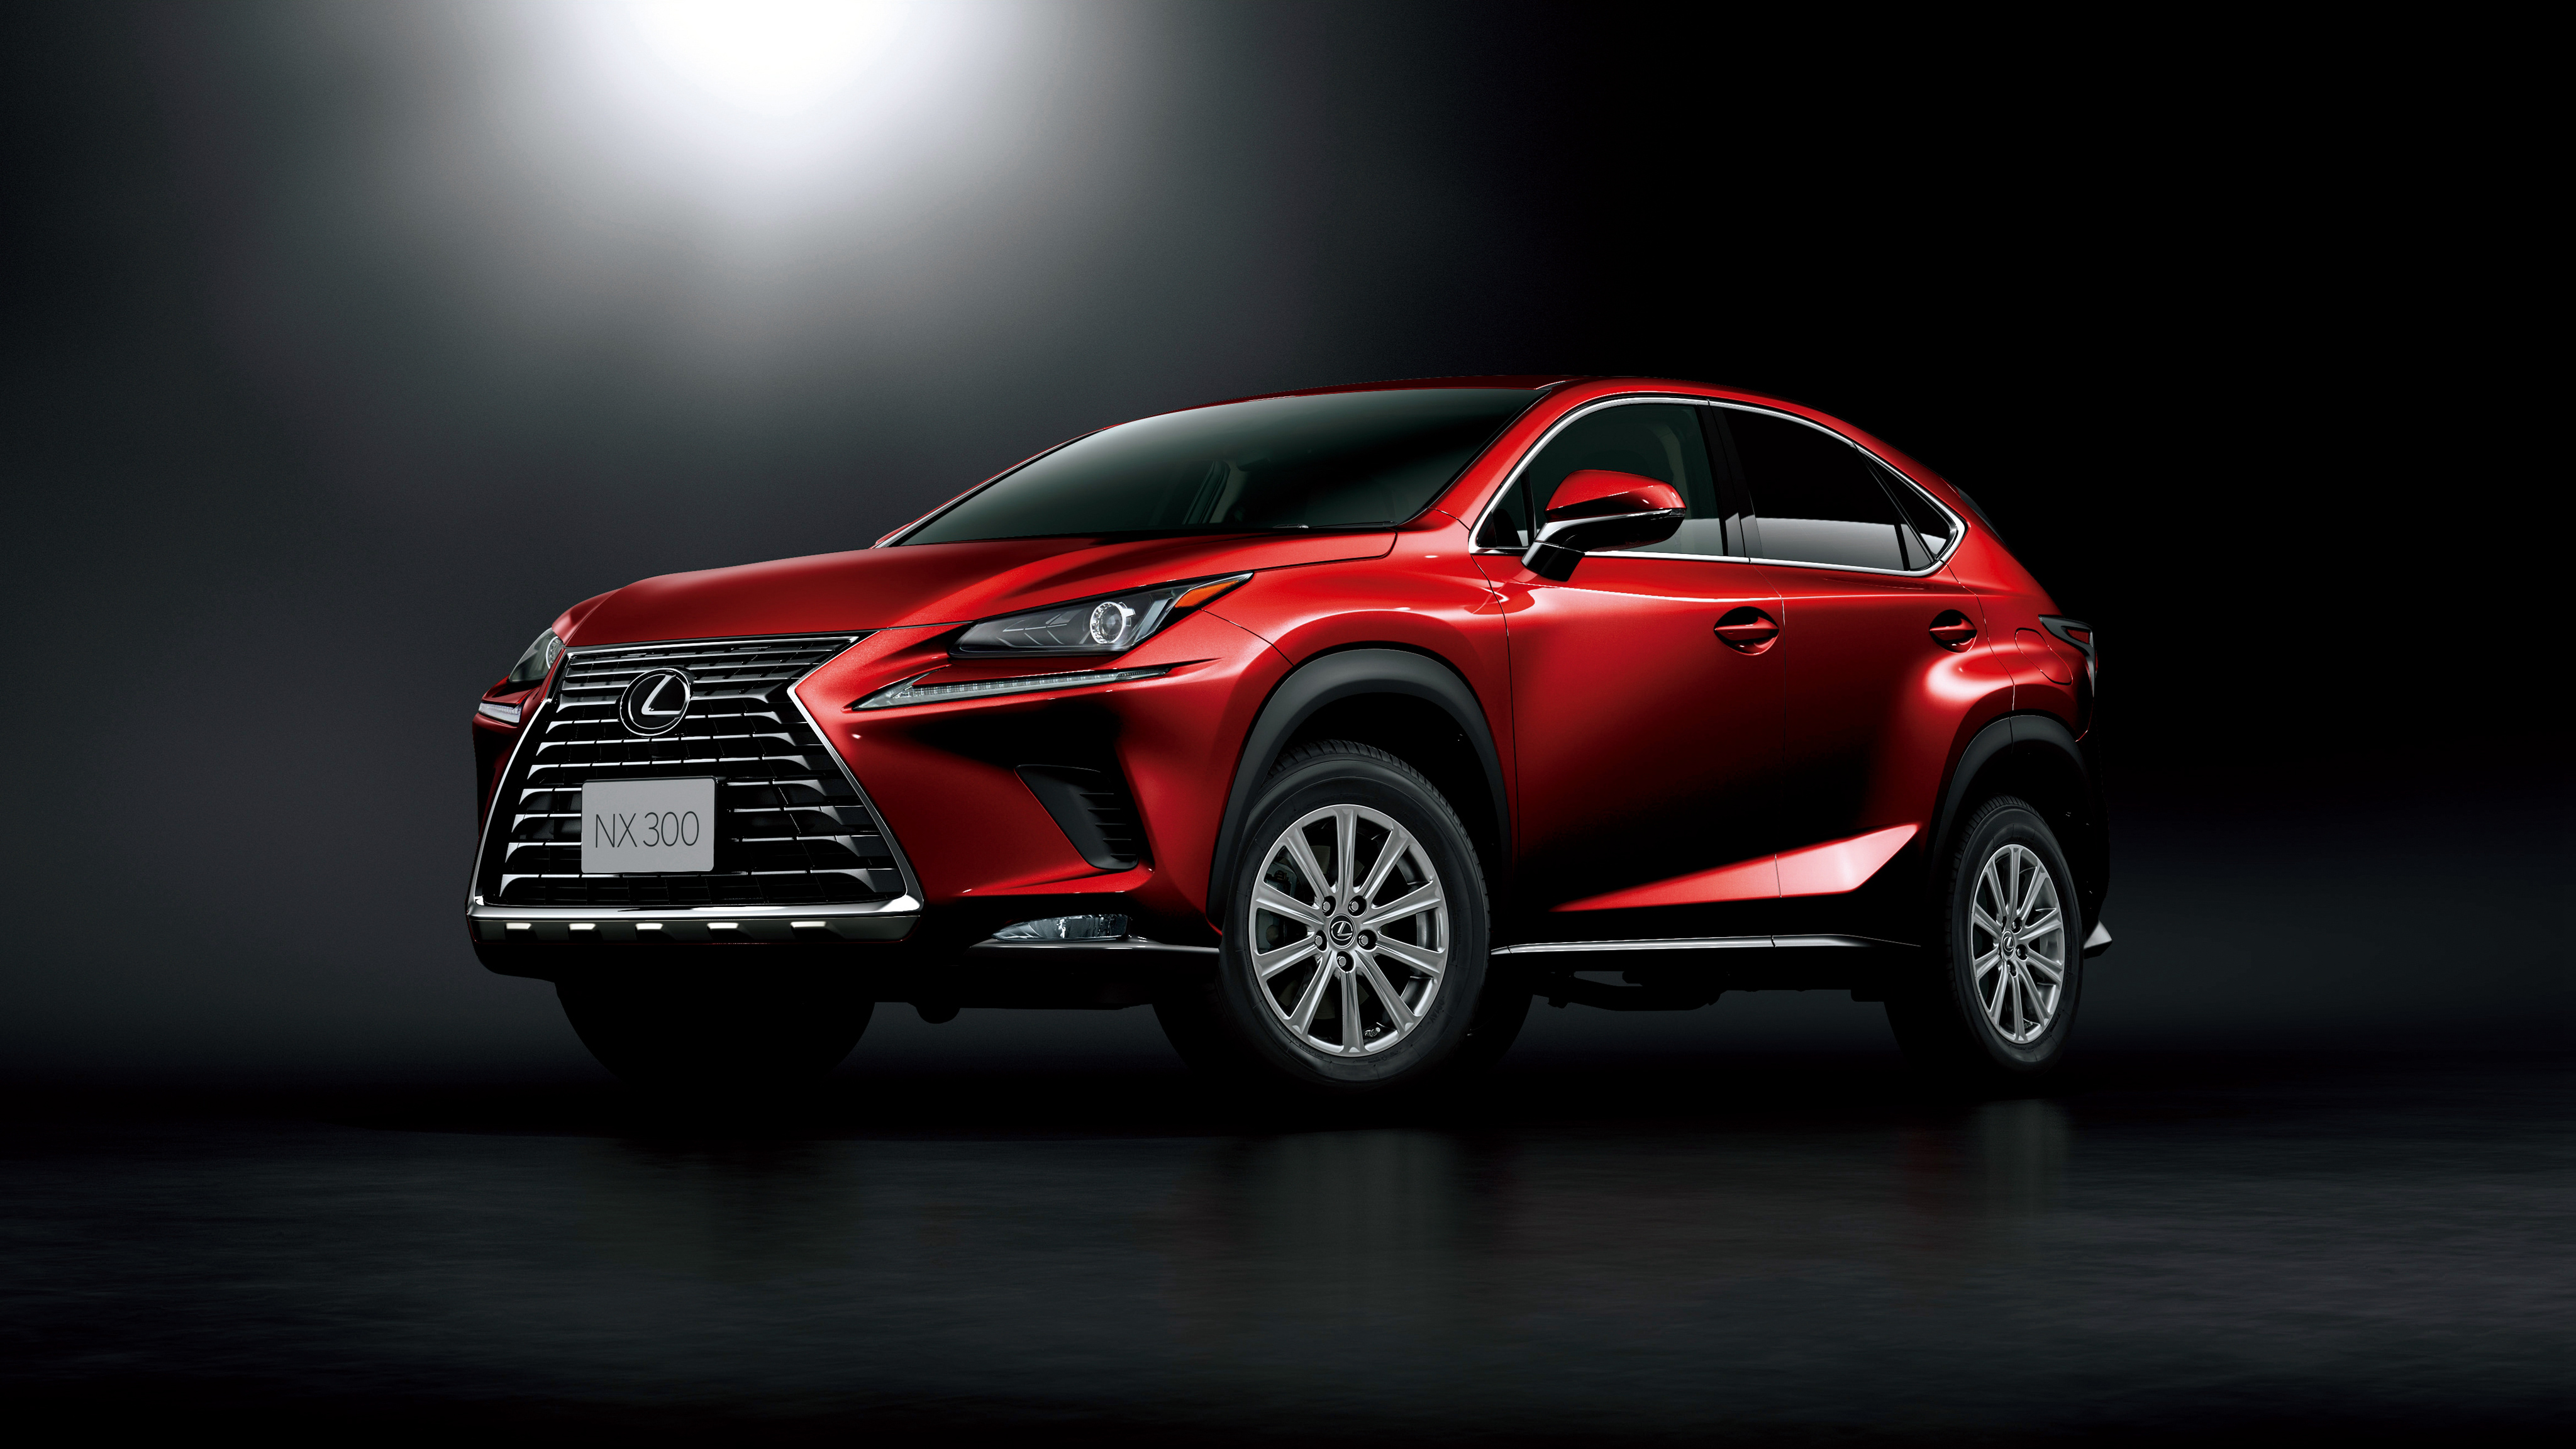 2018 Lexus Nx 300 4k Wallpaper Hd Car Wallpapers